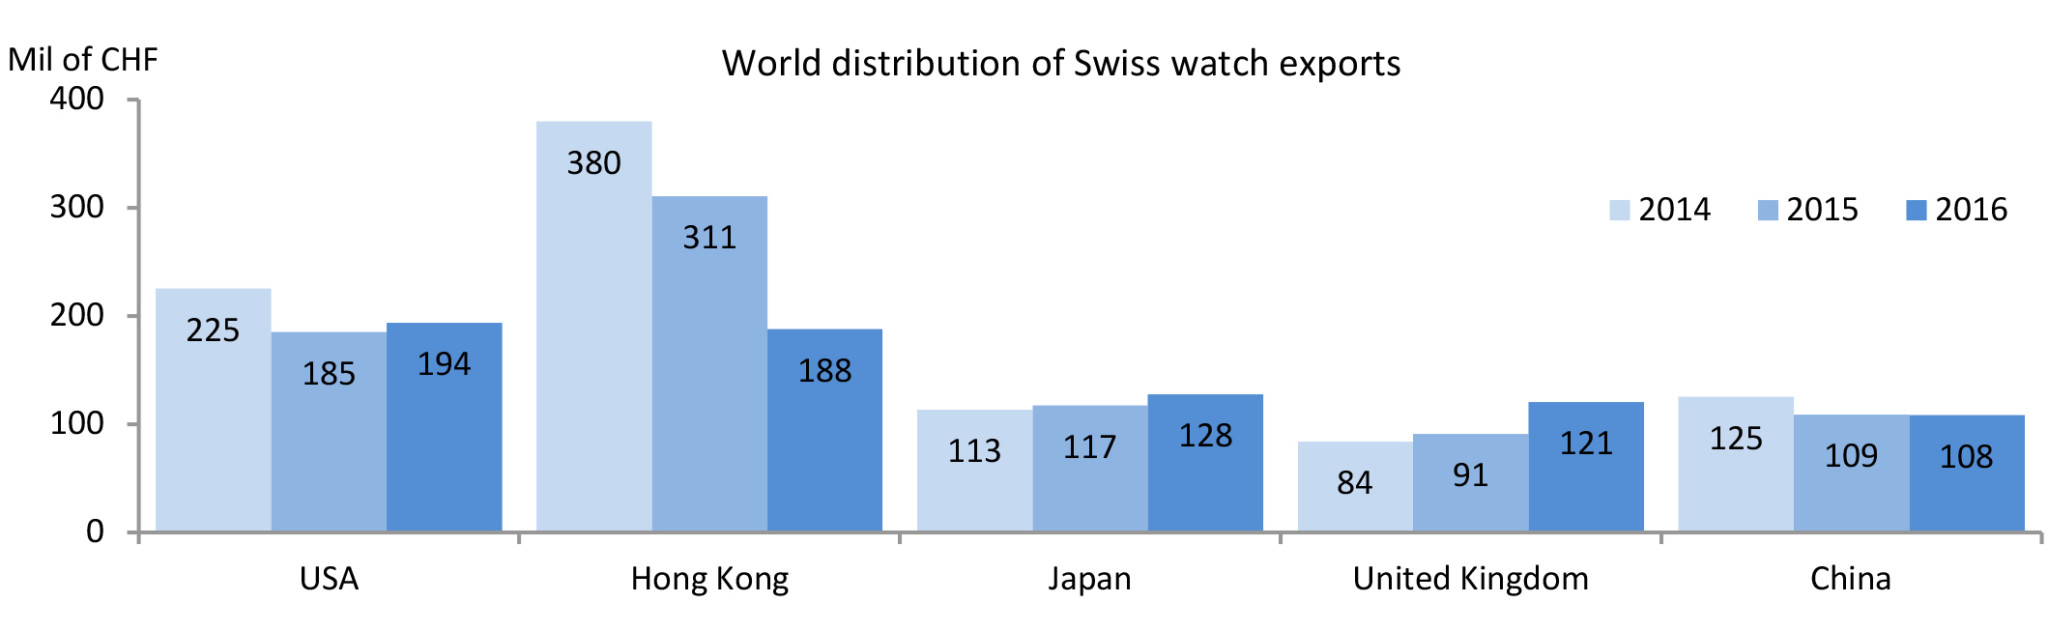 World Distribution of Swiss Watch Exports (Sept 2016)